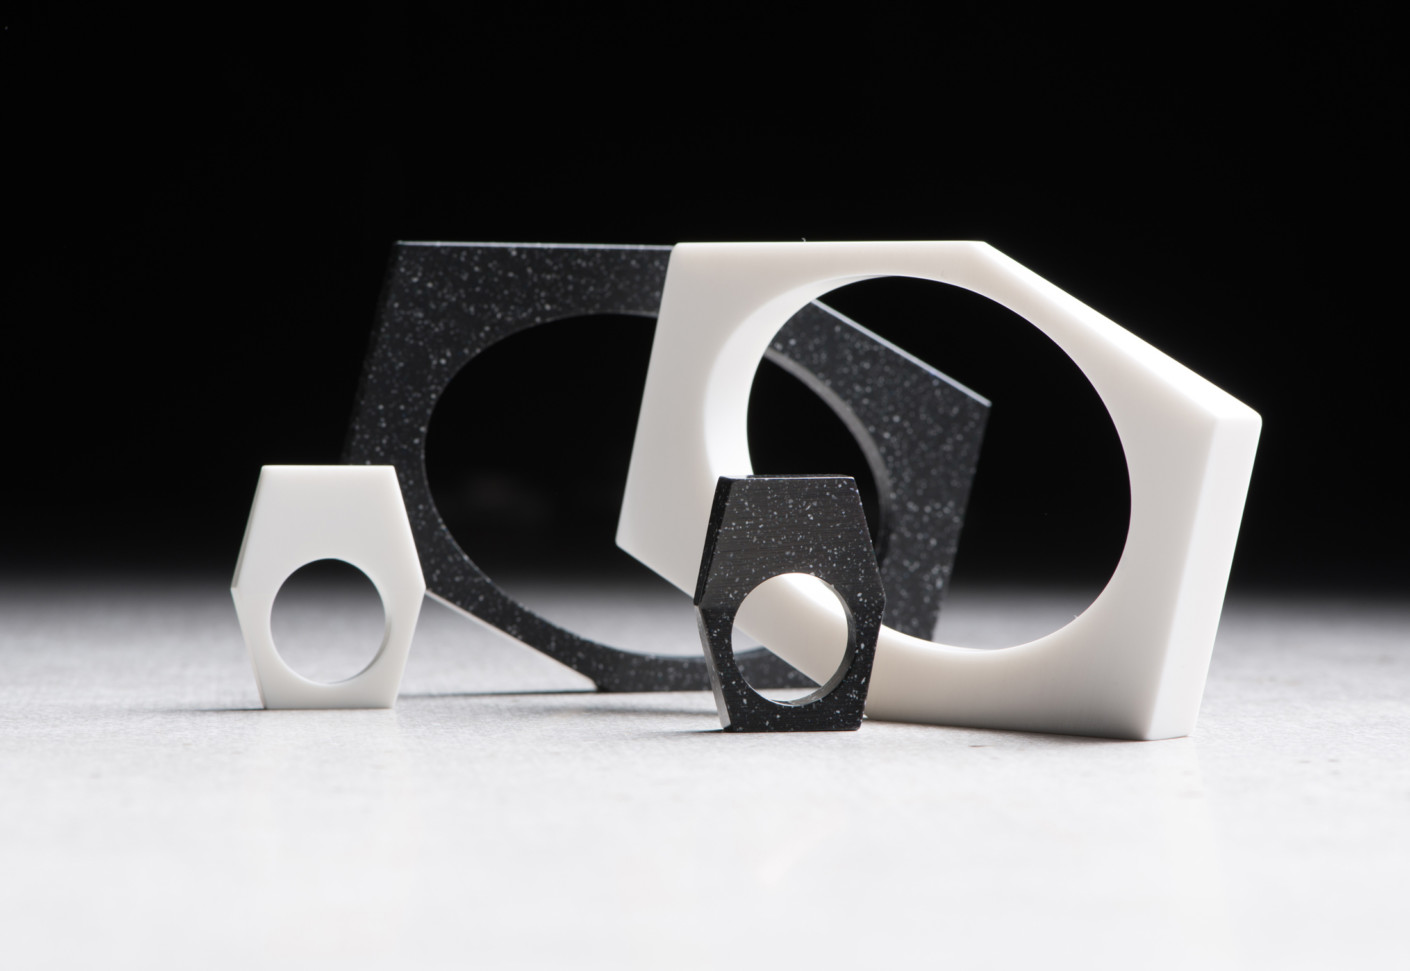 DuPont Corian jewellery from 139 by DuPont Corian